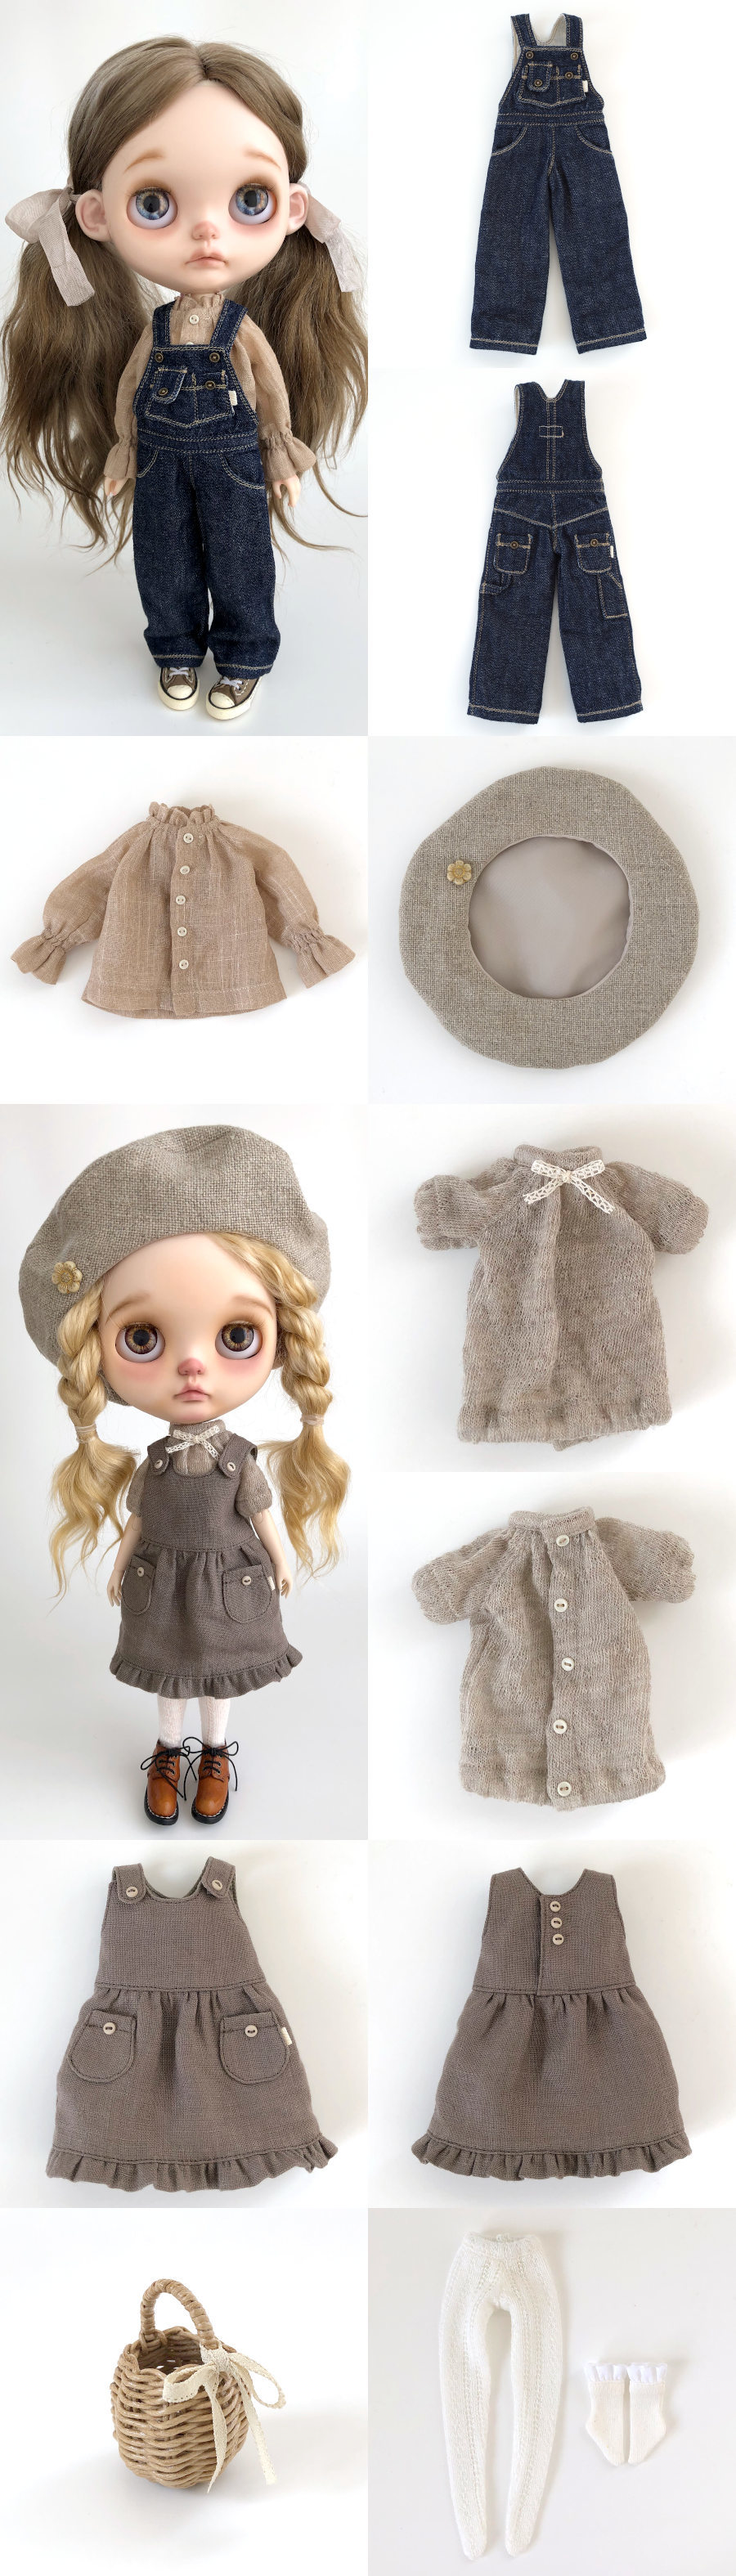 *lucalily * dolls clothes* Overall set*_d0217189_11391651.jpg